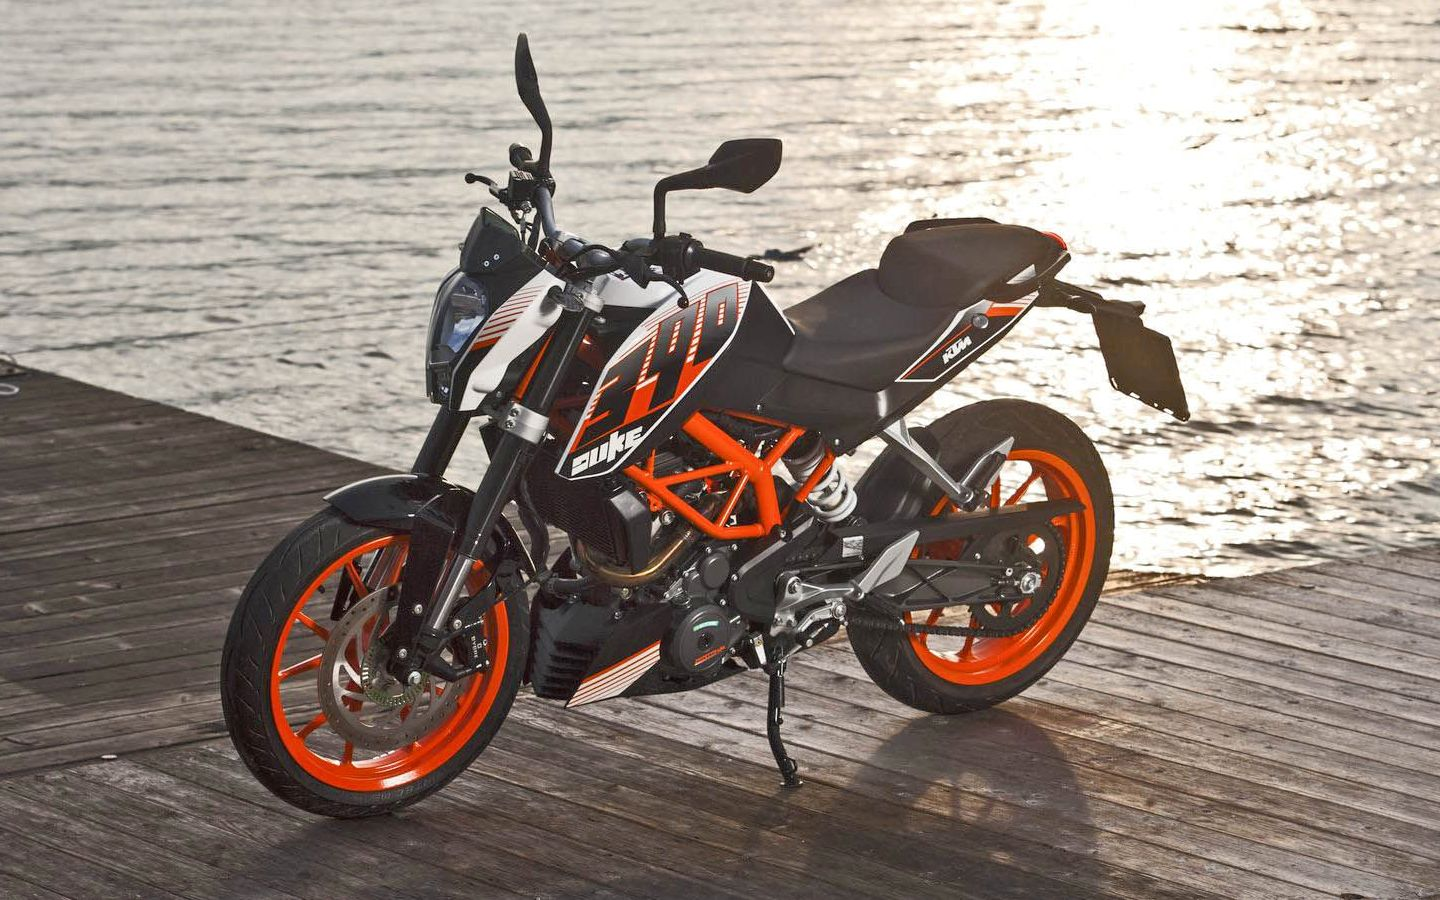 Bike Rental Service Provides Lowest Rate Bike For Rental We Have All Type Of Two Wheeler For Rental Service Provides Lowest Rate On Two Wheeler Rental  Flat 10 % Discount On Booking